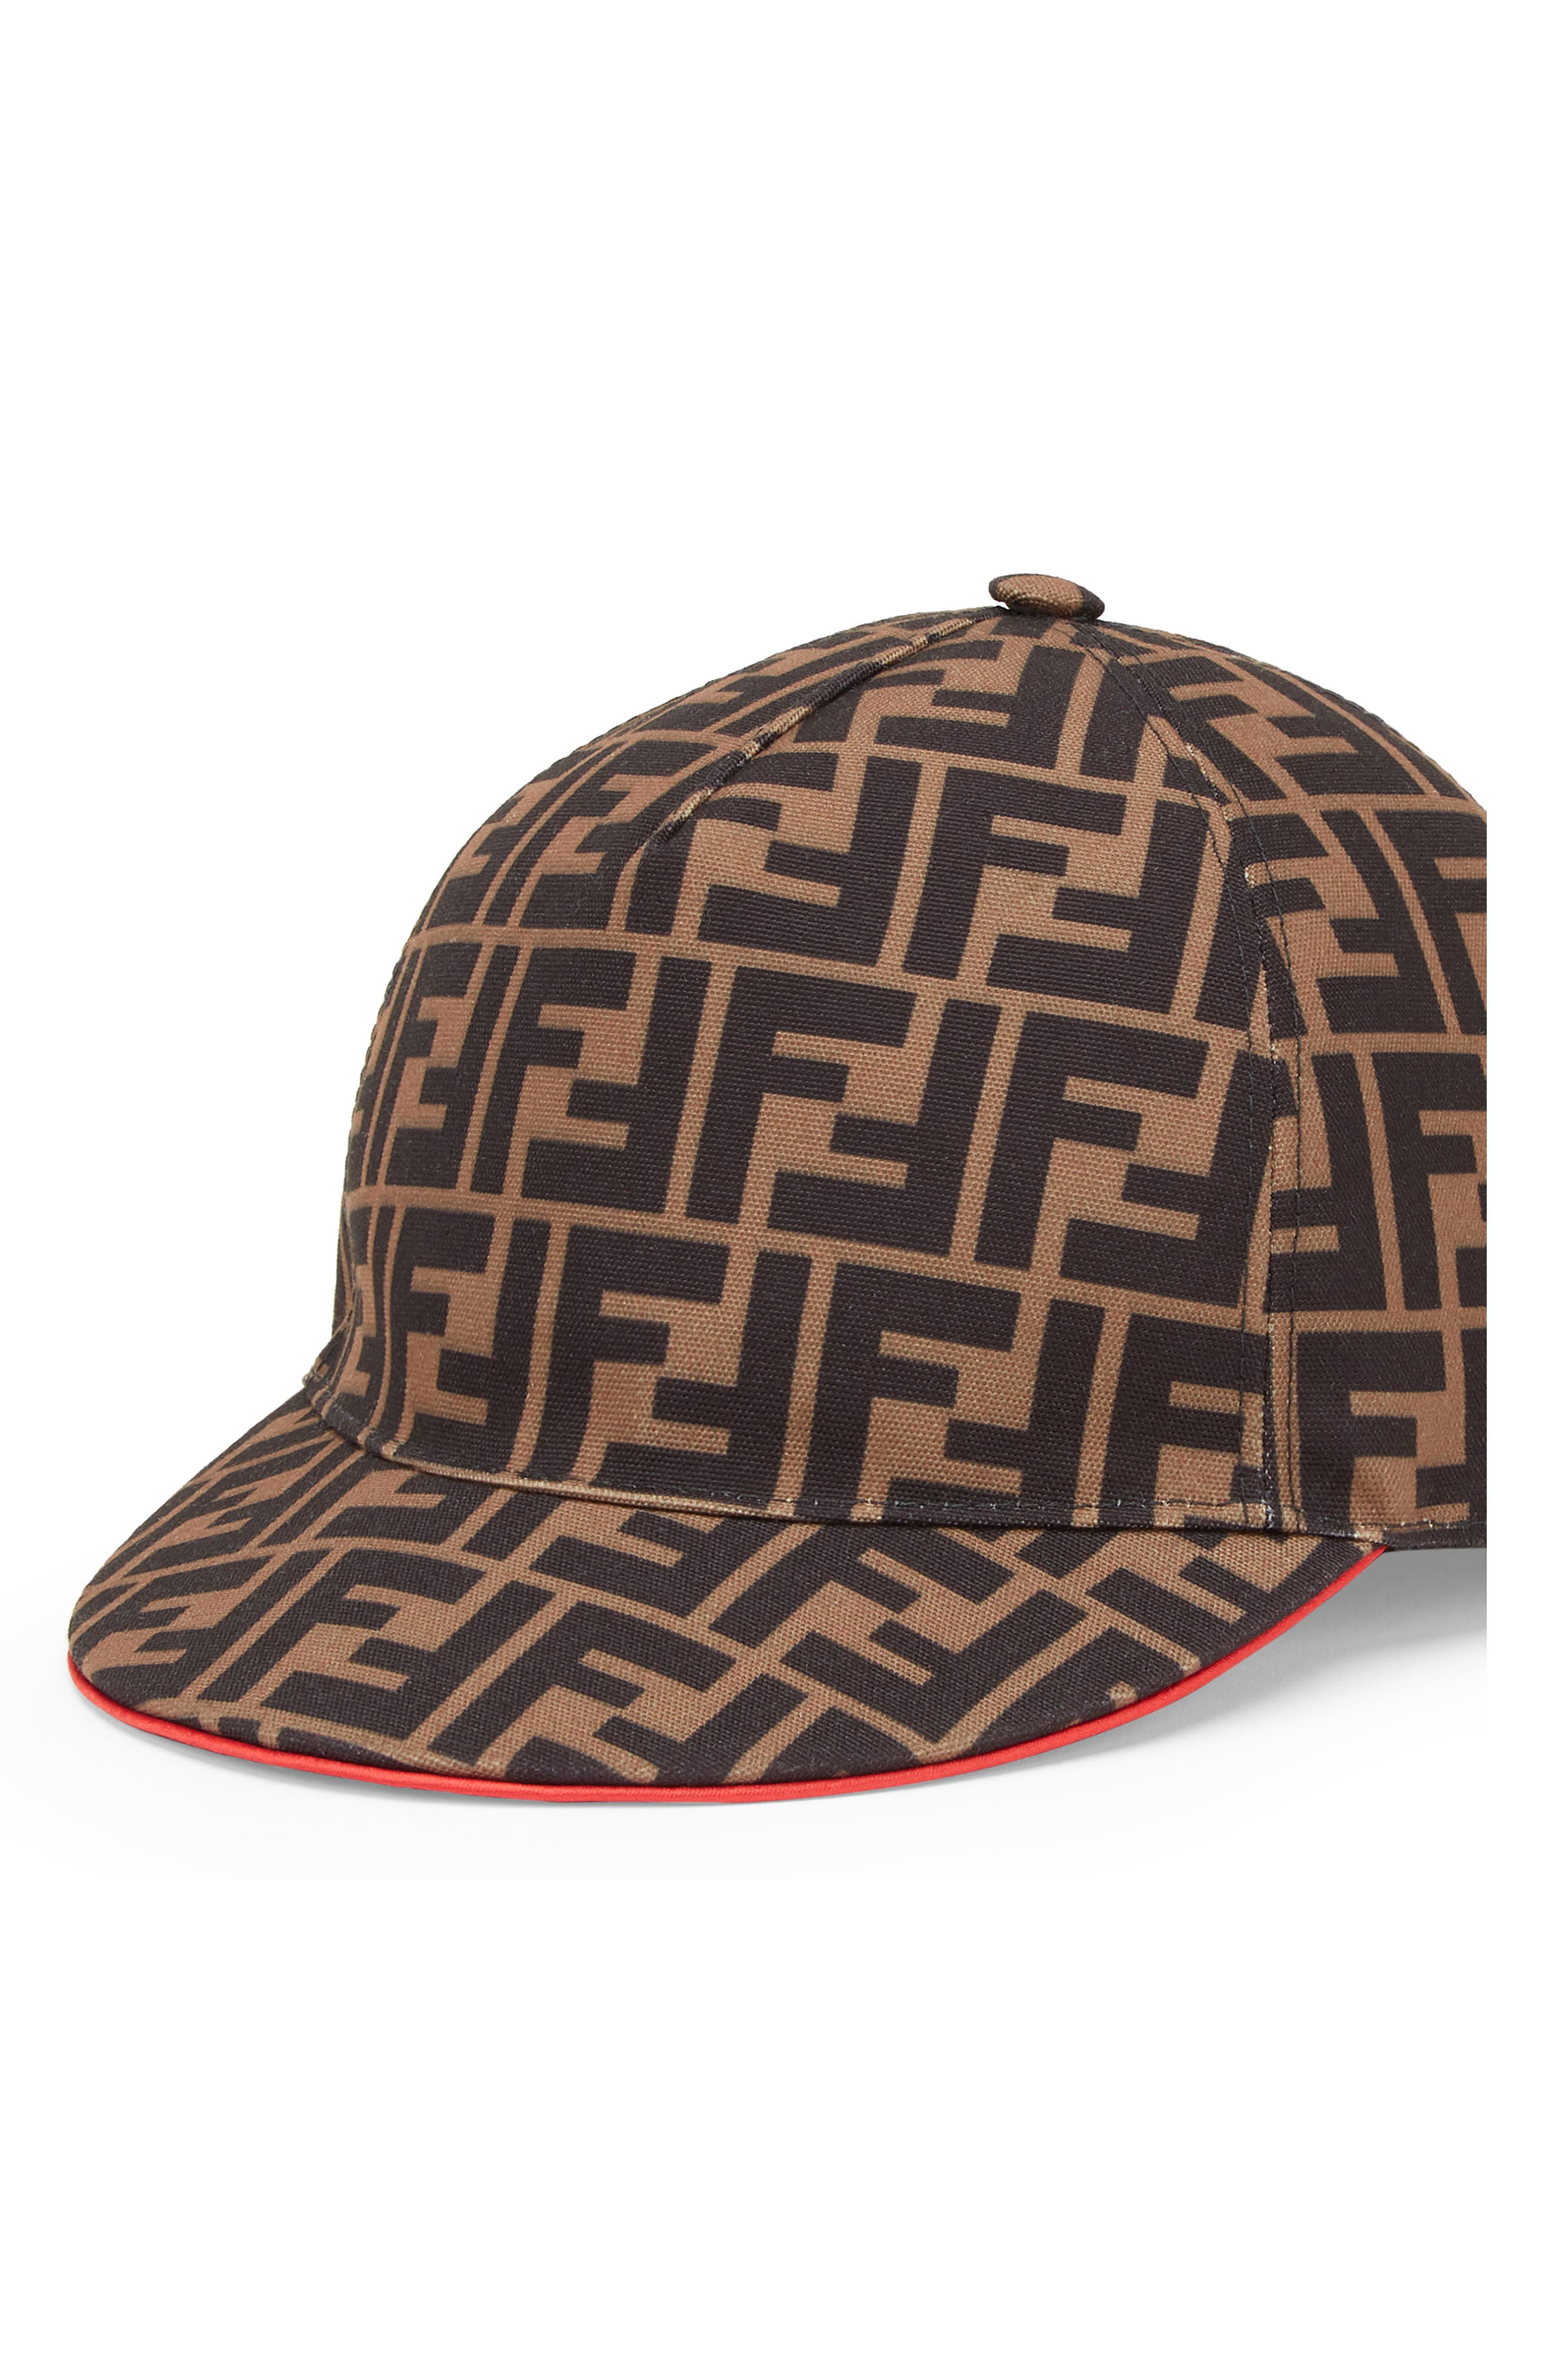 Fendirama Logo Baseball Cap,                             Alternate thumbnail 2, color,                             200